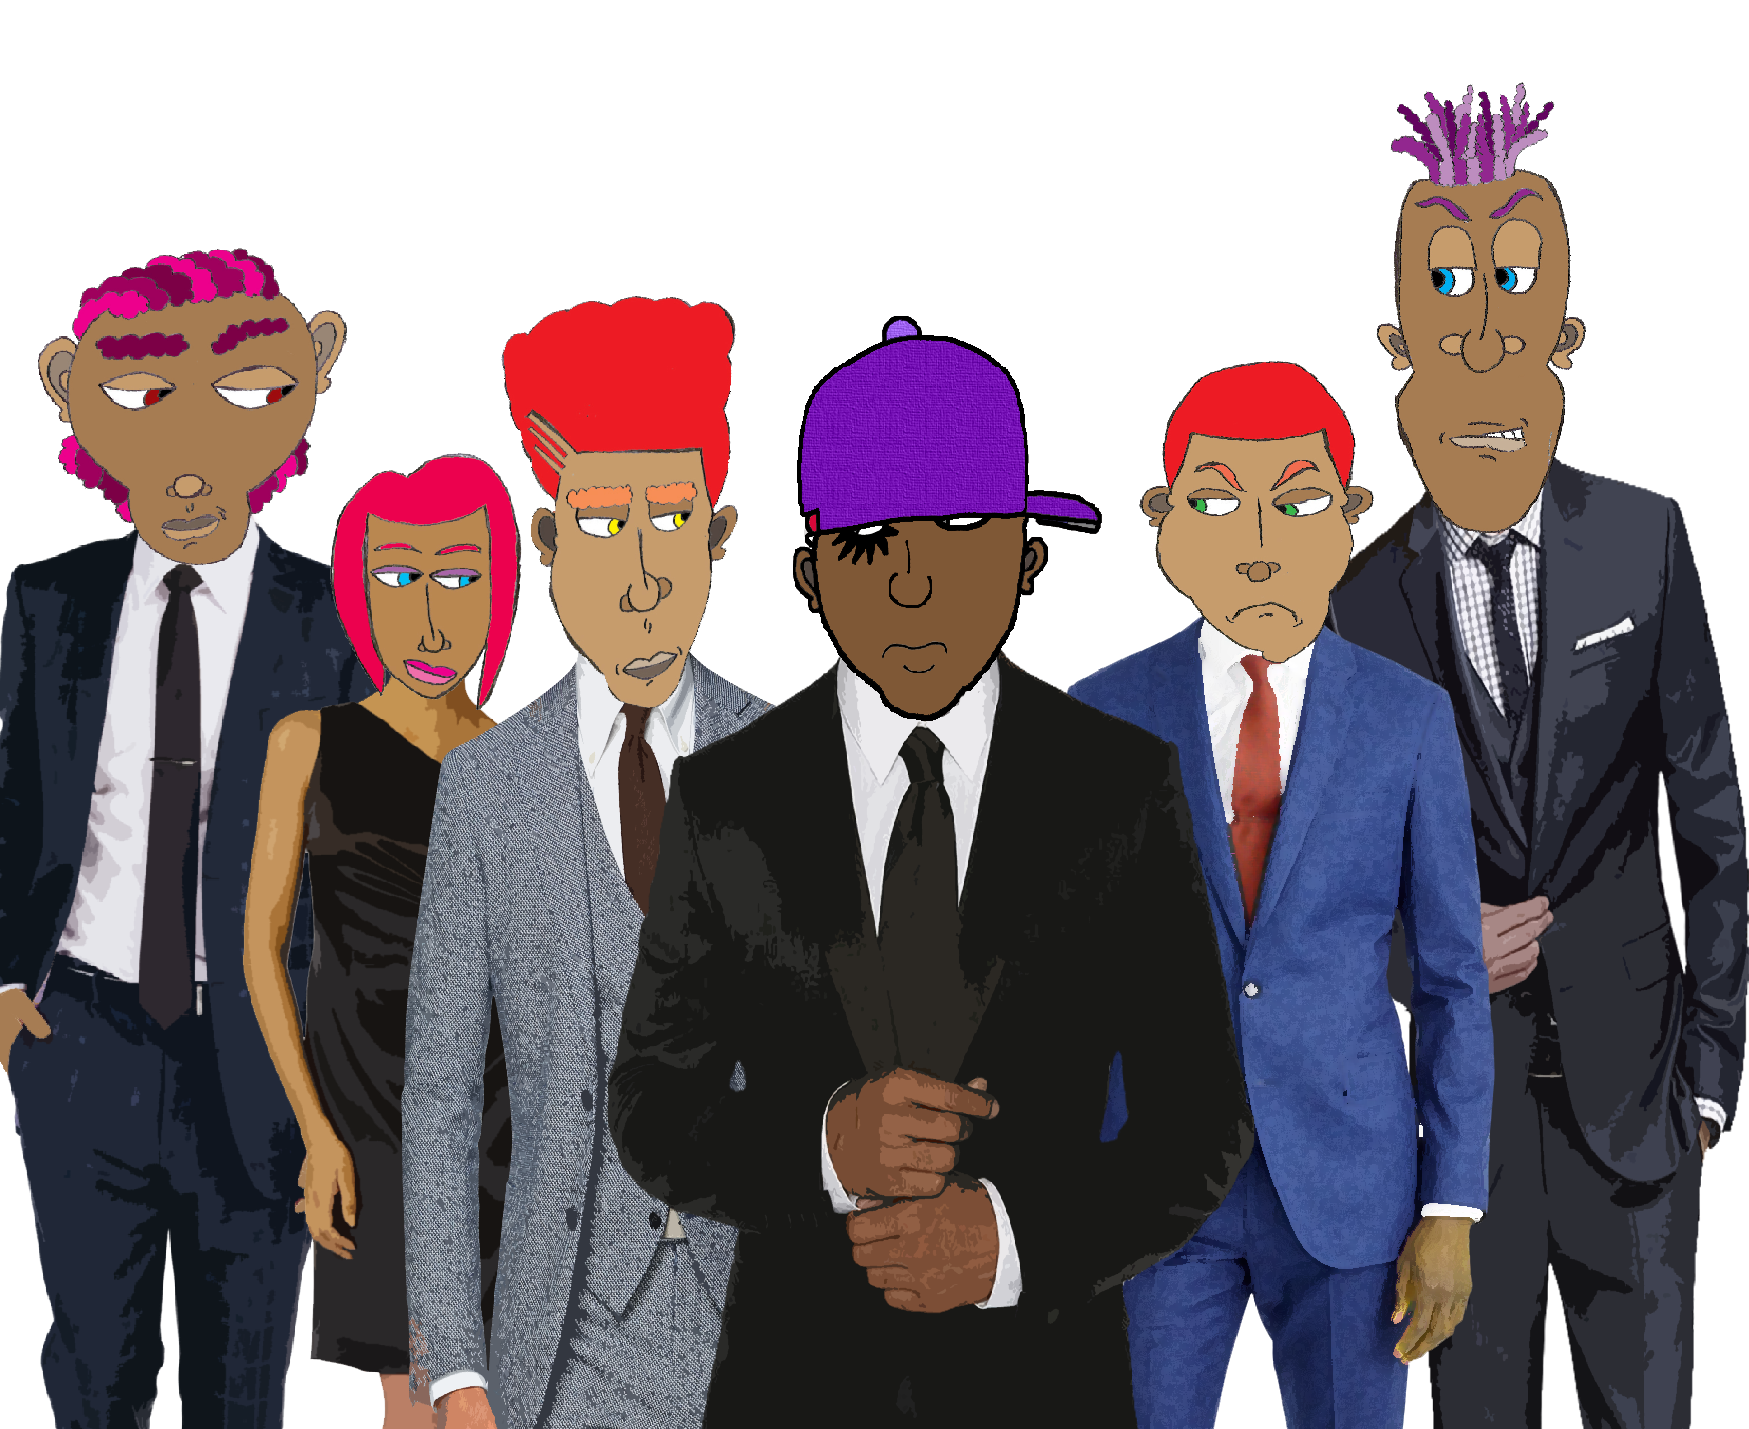 From Left to Right: Omar (Percussion & Security), Dahlia (Keyboards & Synth), Mister M. (Guitar), BlackDroog (BlackDroog), Yancy (Drums), Stretch (Bass Guitar)